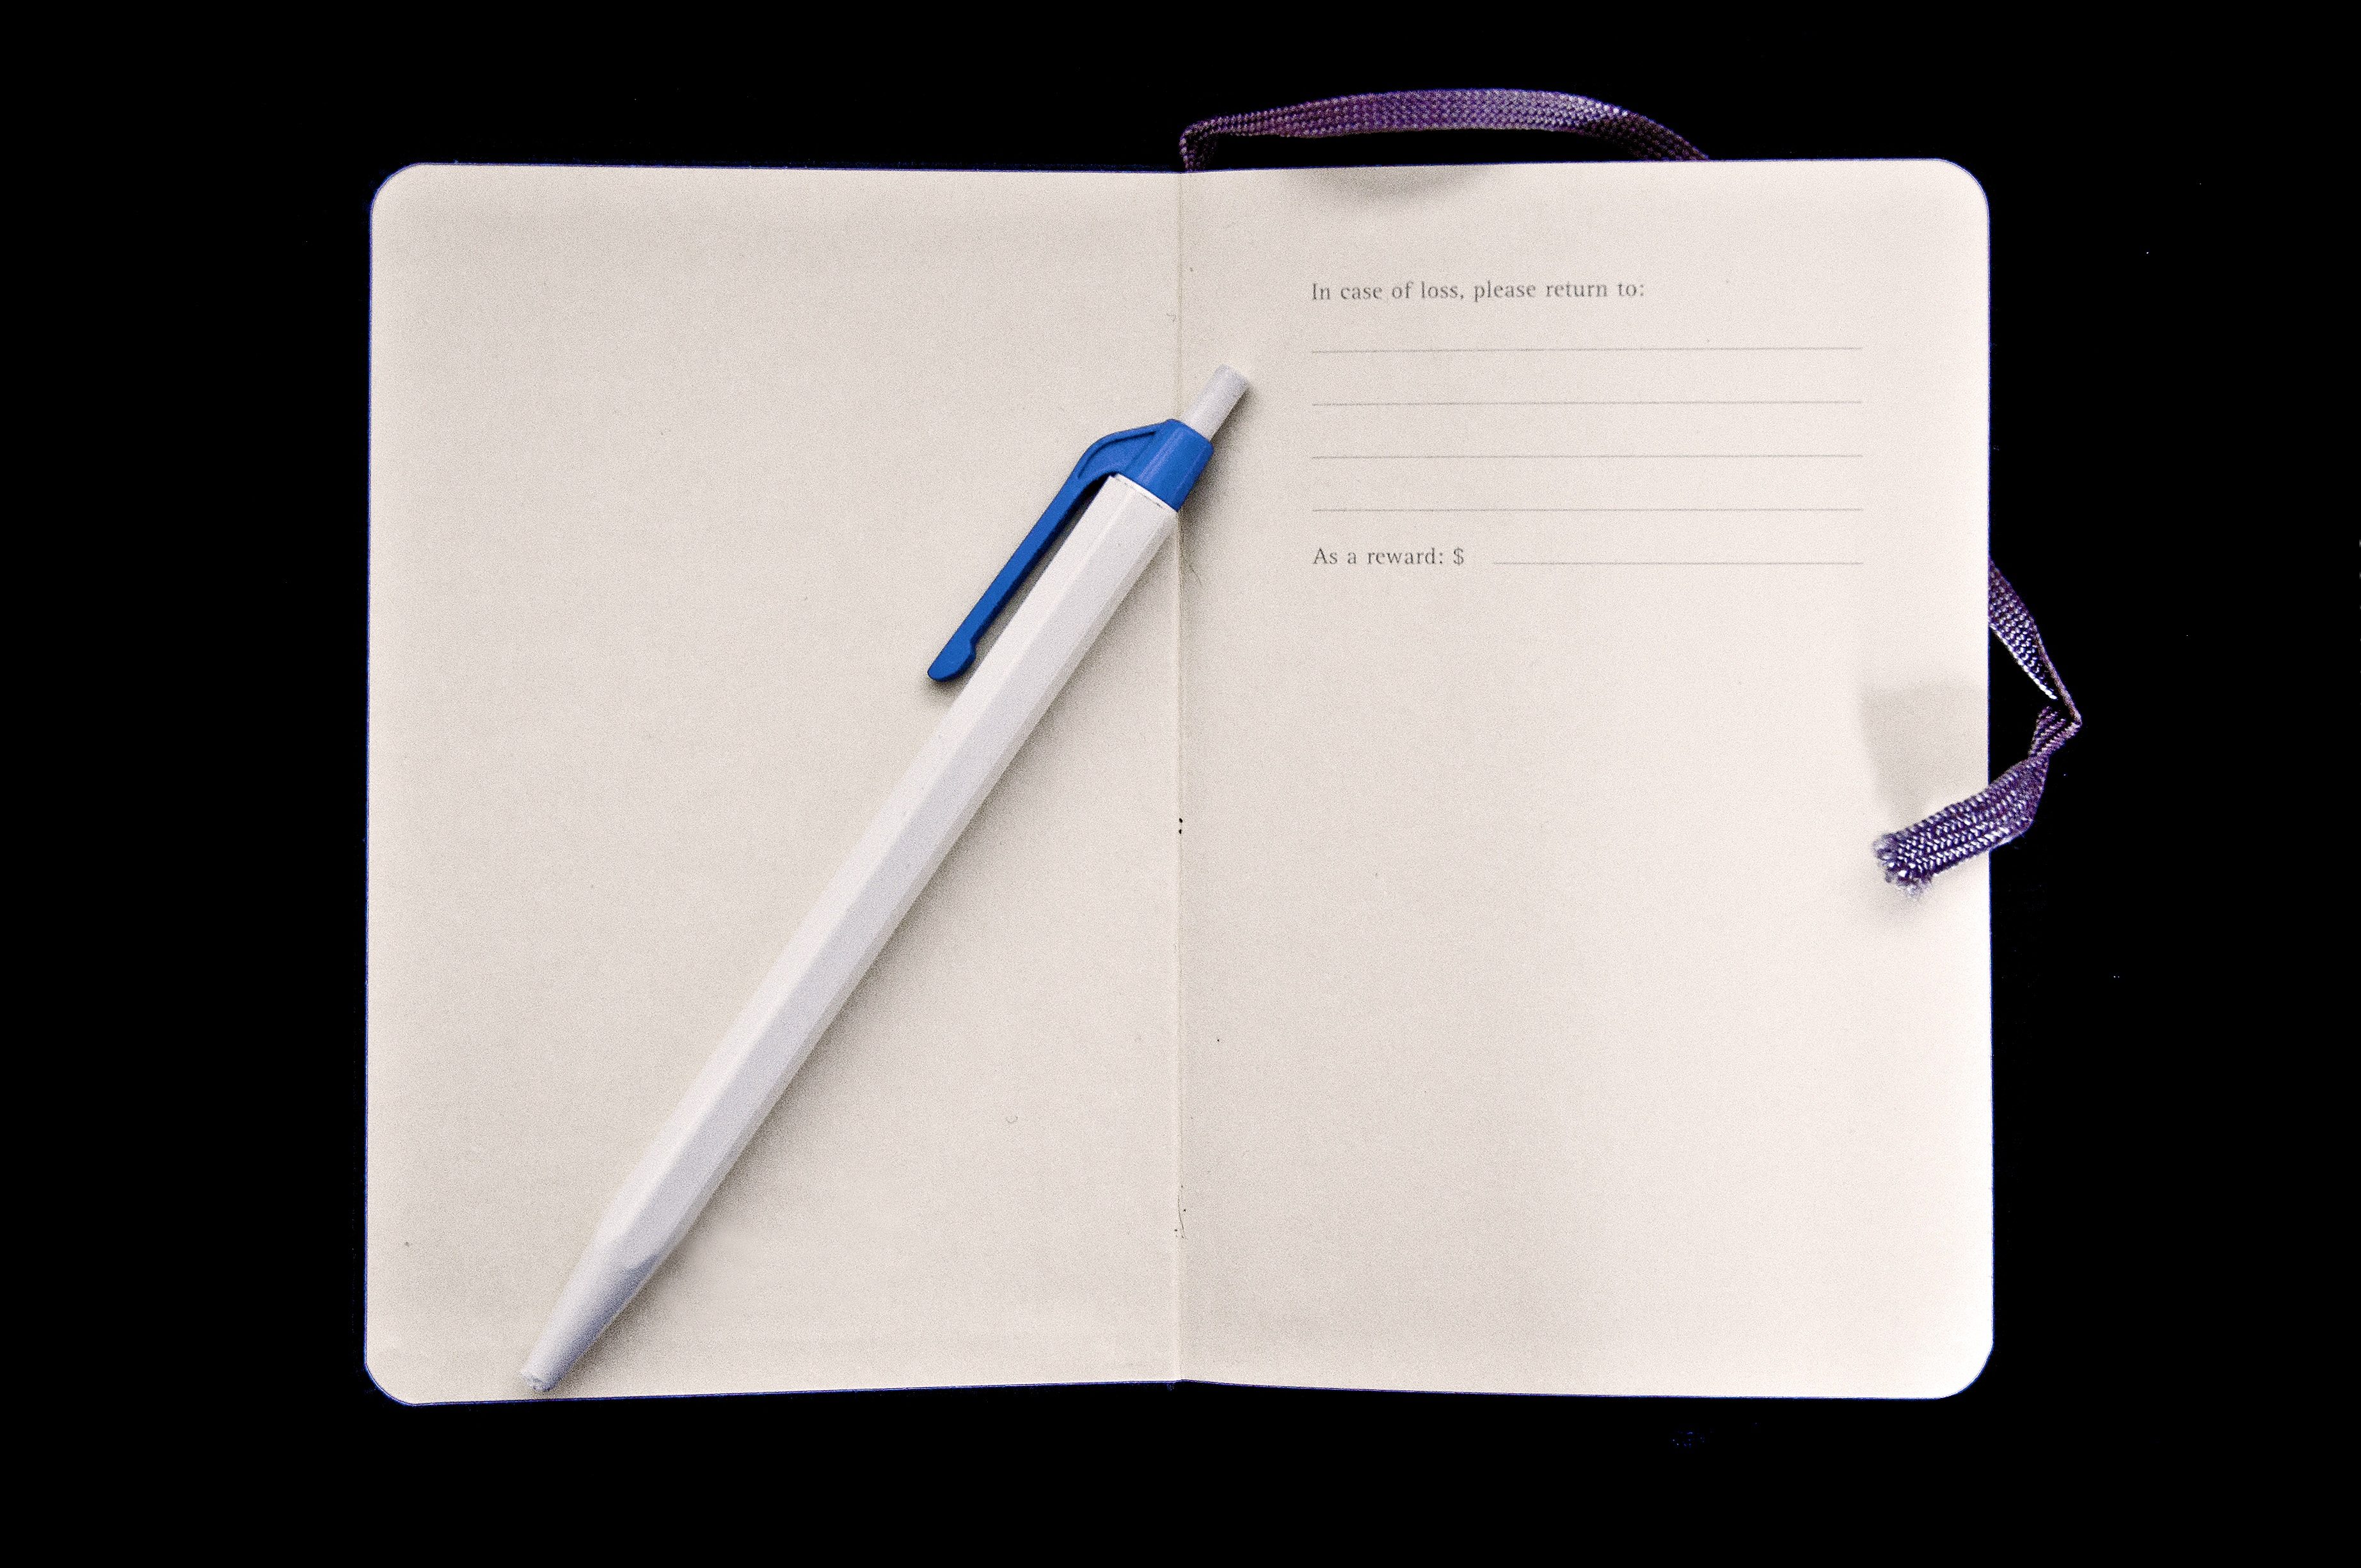 Finder's fee notebook notes